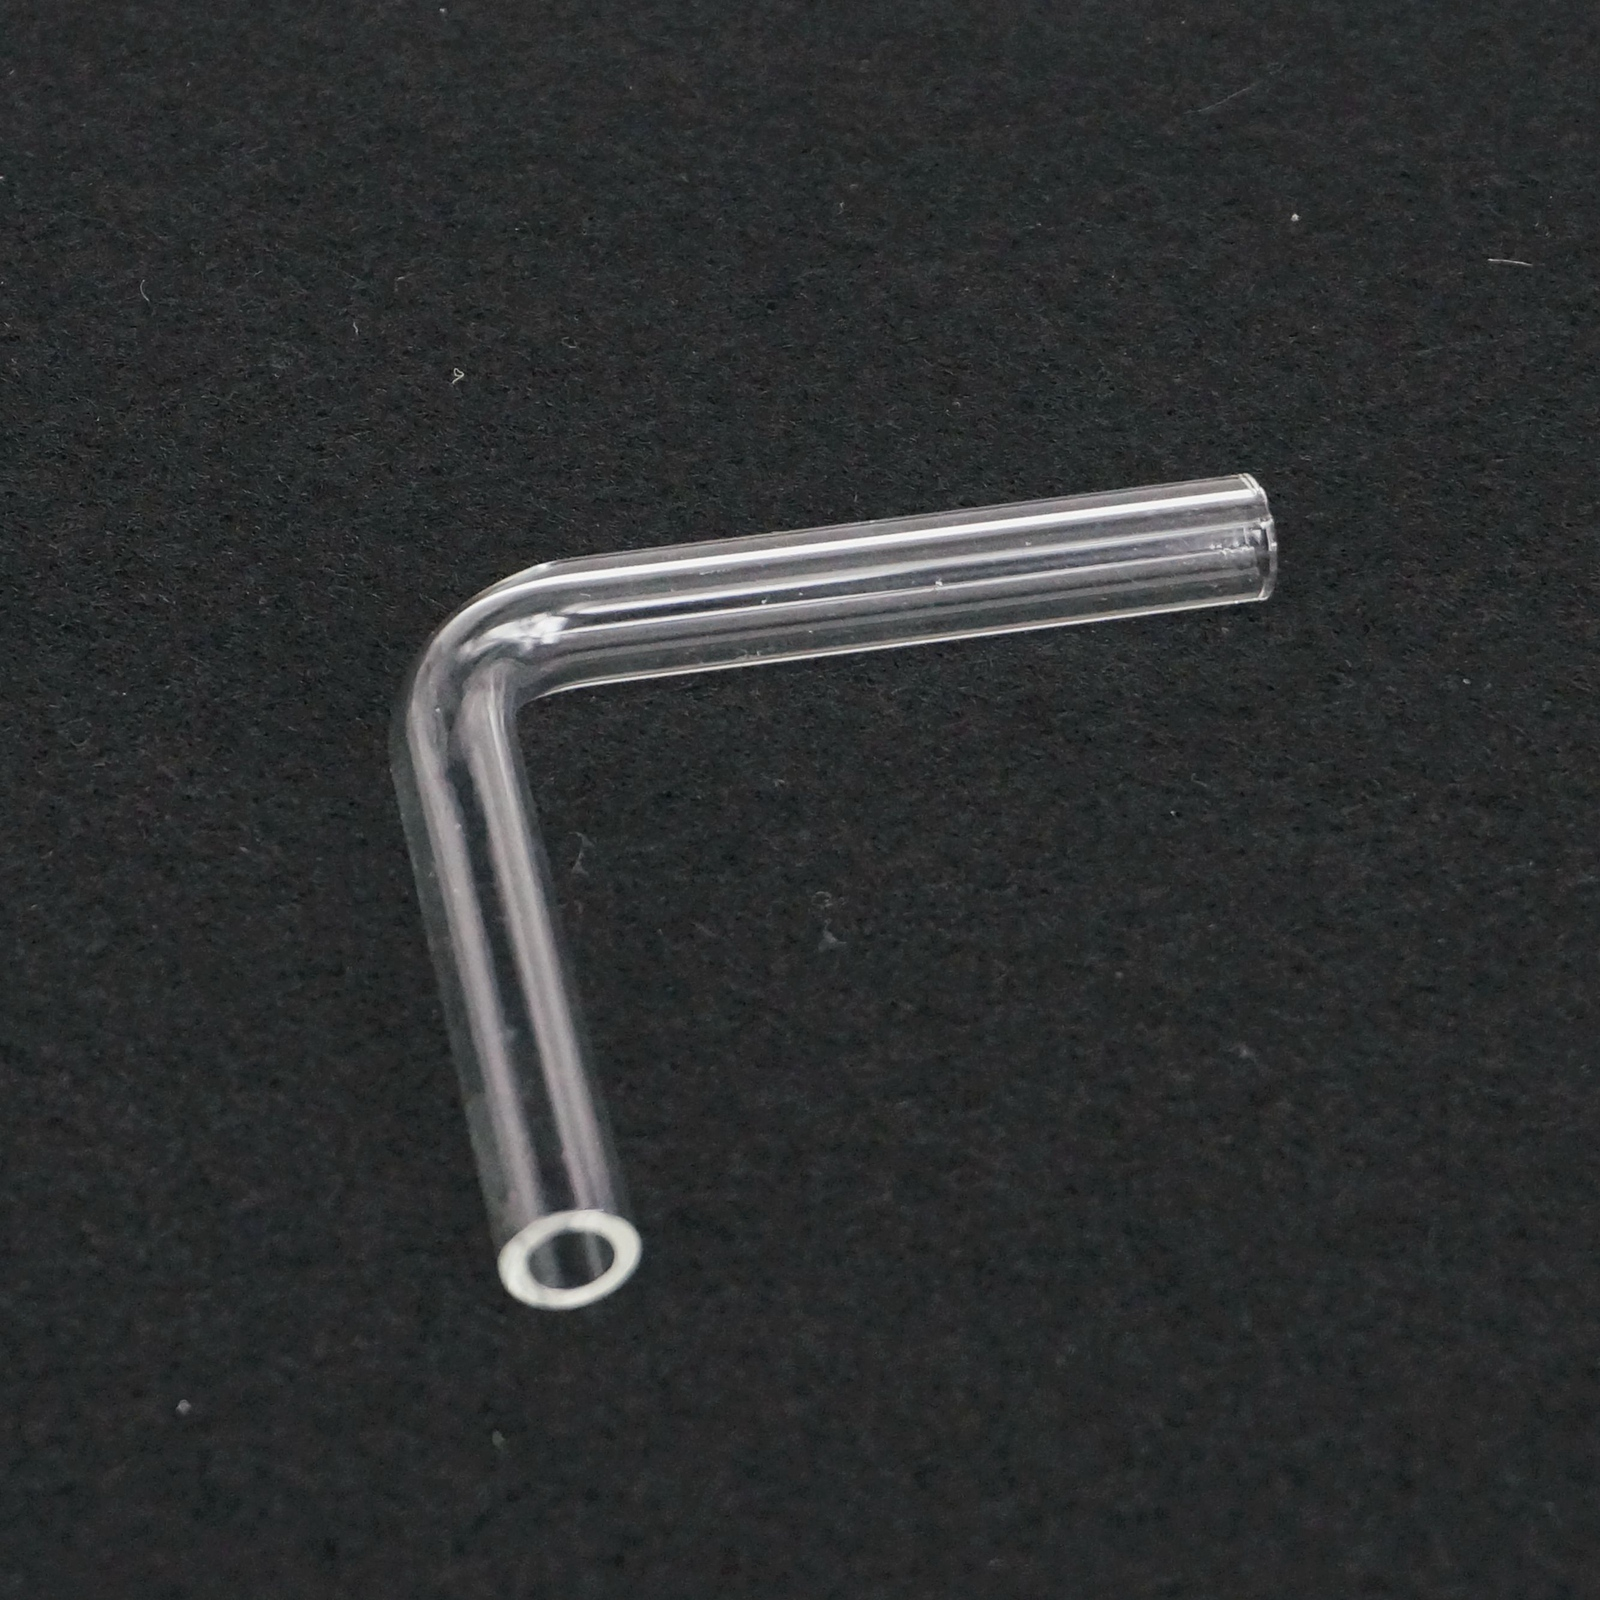 90 Degree Elbow Laboratory Glass Gas Guide Tube Adapter Glassware Diameter 7mm Length 44mm